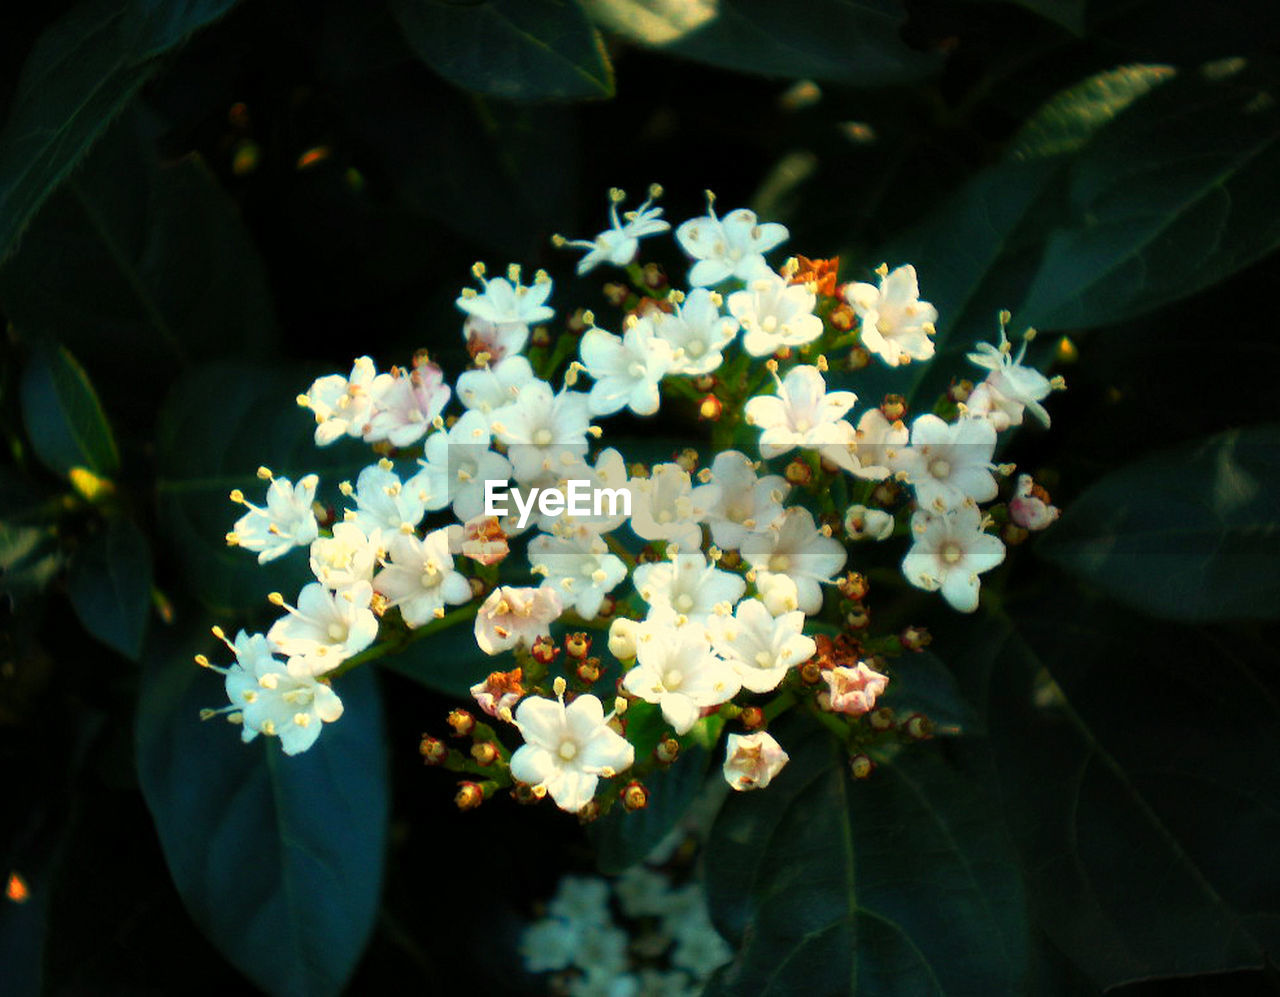 flowering plant, flower, plant, beauty in nature, freshness, growth, vulnerability, fragility, leaf, plant part, nature, close-up, day, petal, white color, inflorescence, flower head, outdoors, no people, focus on foreground, bunch of flowers, lantana